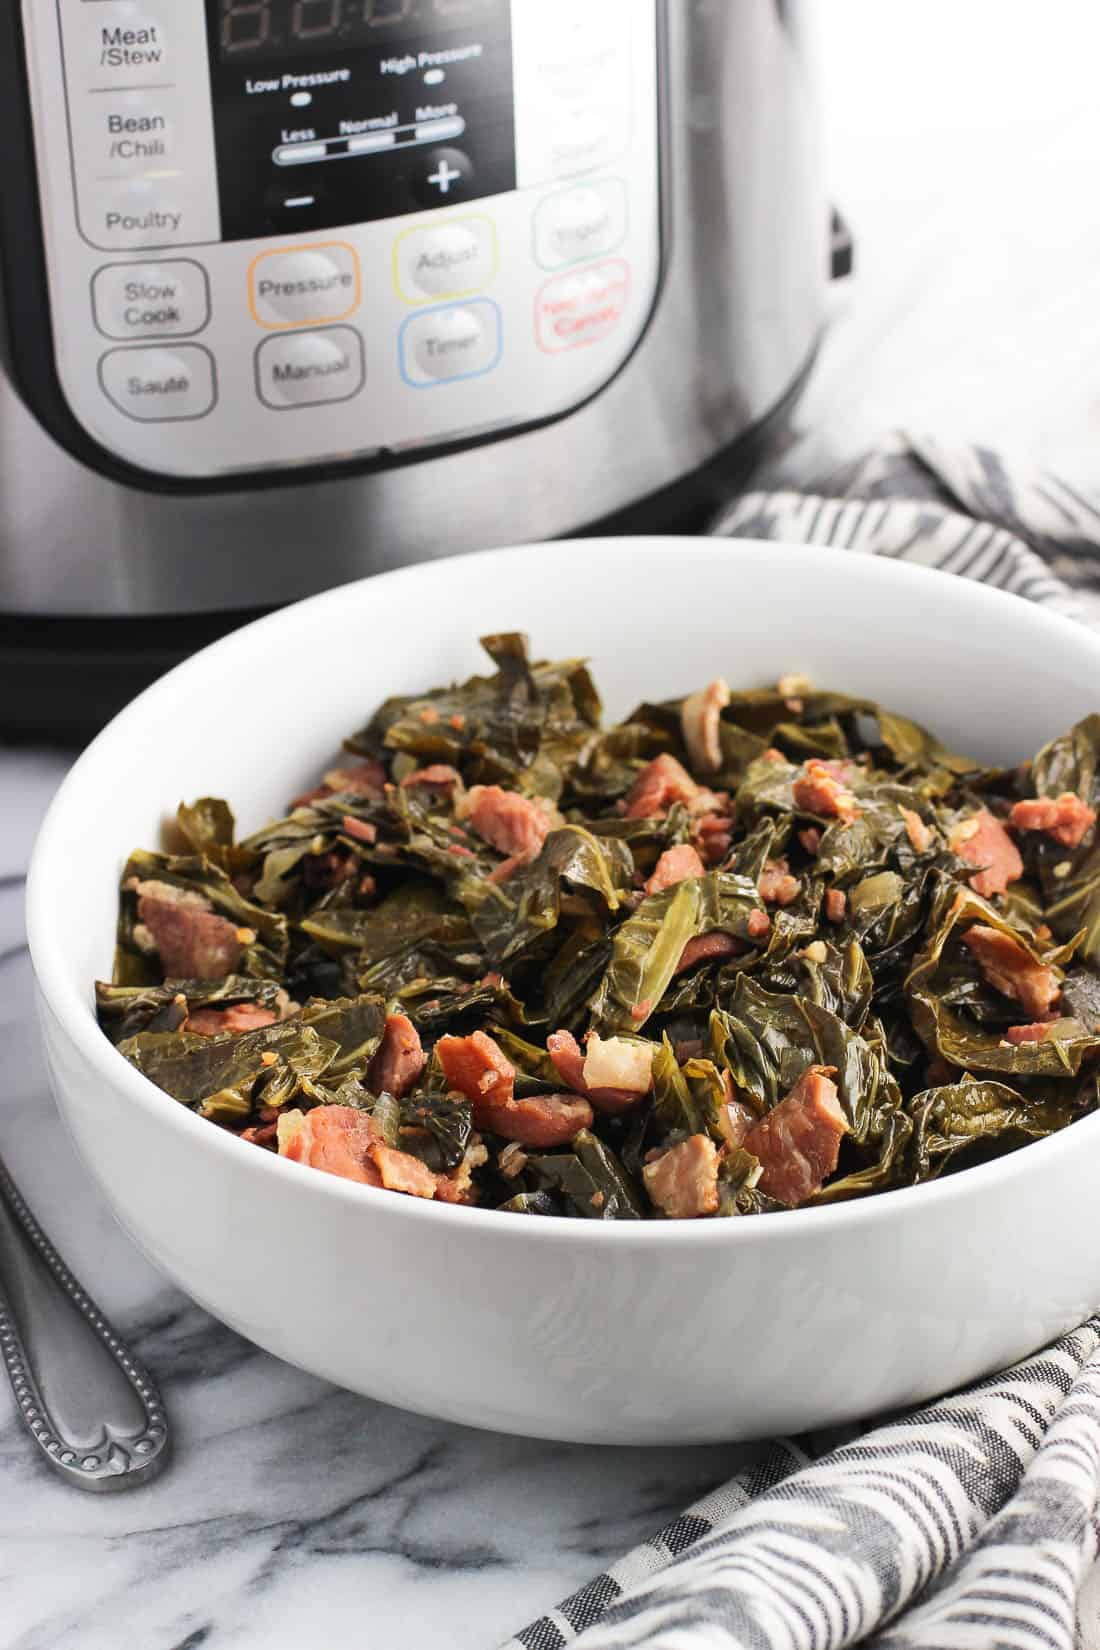 A serving bowl full of Southern collard greens with an Instant Pot in the background.